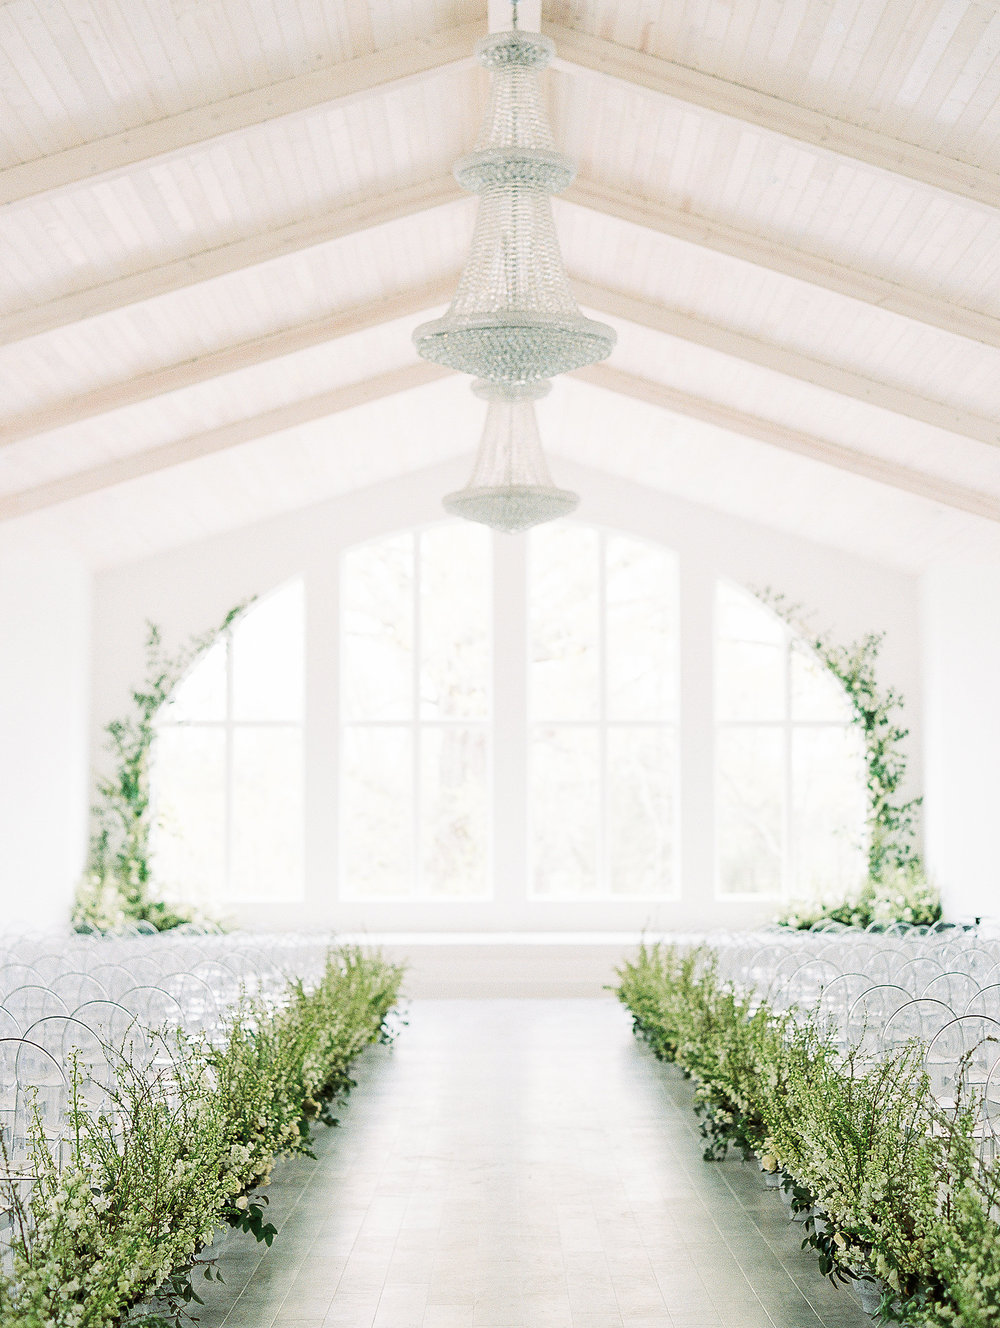 zimmerman-events-wedding-ceremony-floral.jpg